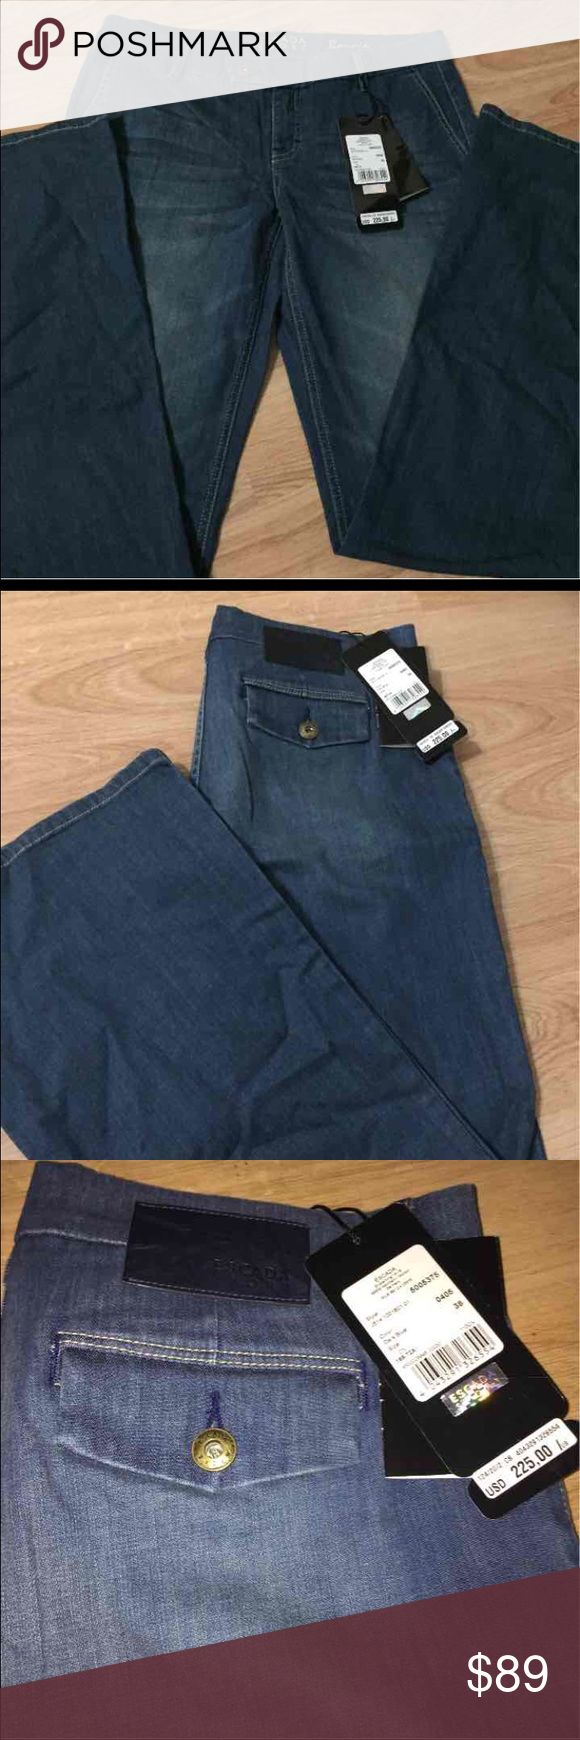 NWT ESCADA Sport Bonnie Flare Jeans 38 NEW ESCADA Sport Bonnie Flare Jeans   -MSRP: $225.00  -Size: 38   Brand new with original tags. This is a beautiful and classic pair of jeans that can be worn anywhere! Very high quality. A wonderful addition to any closet! Escada Jeans Flare & Wide Leg